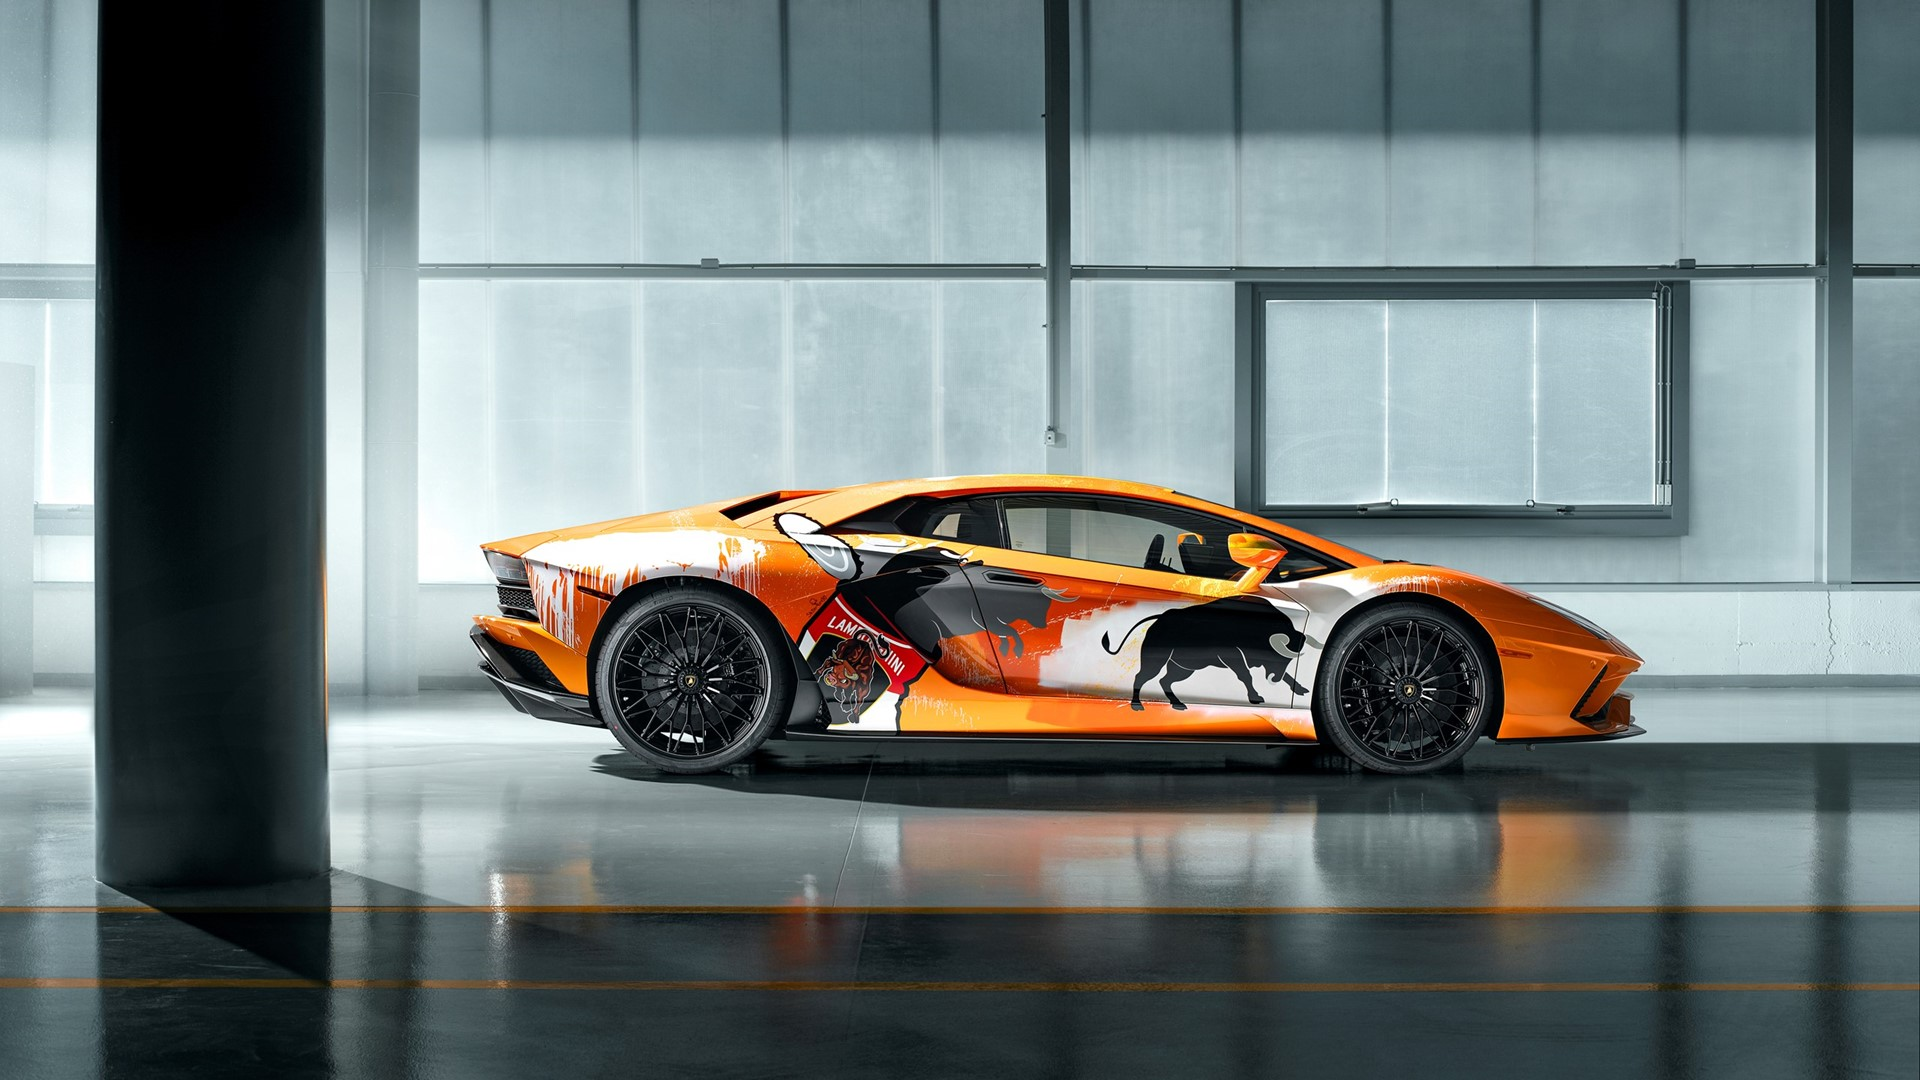 New production record: Automobili Lamborghini celebrates the 10,000th Aventador - Image 1